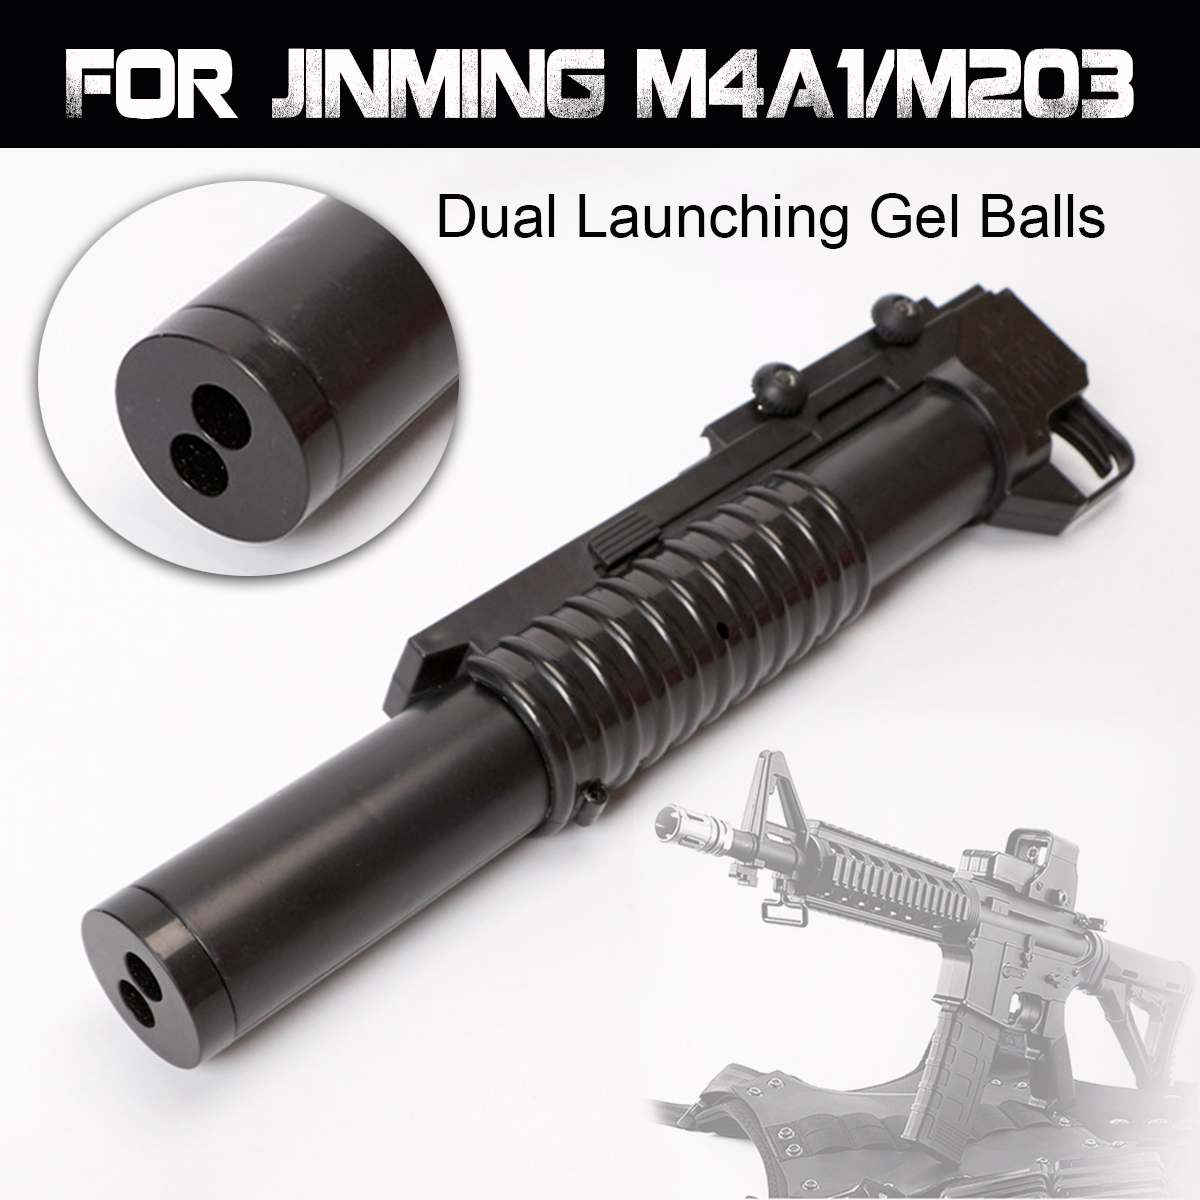 Double Barrel Grenade Launcher Accessories For JINMING M4A1/M203 Gel Ball Blasting Guns Toys